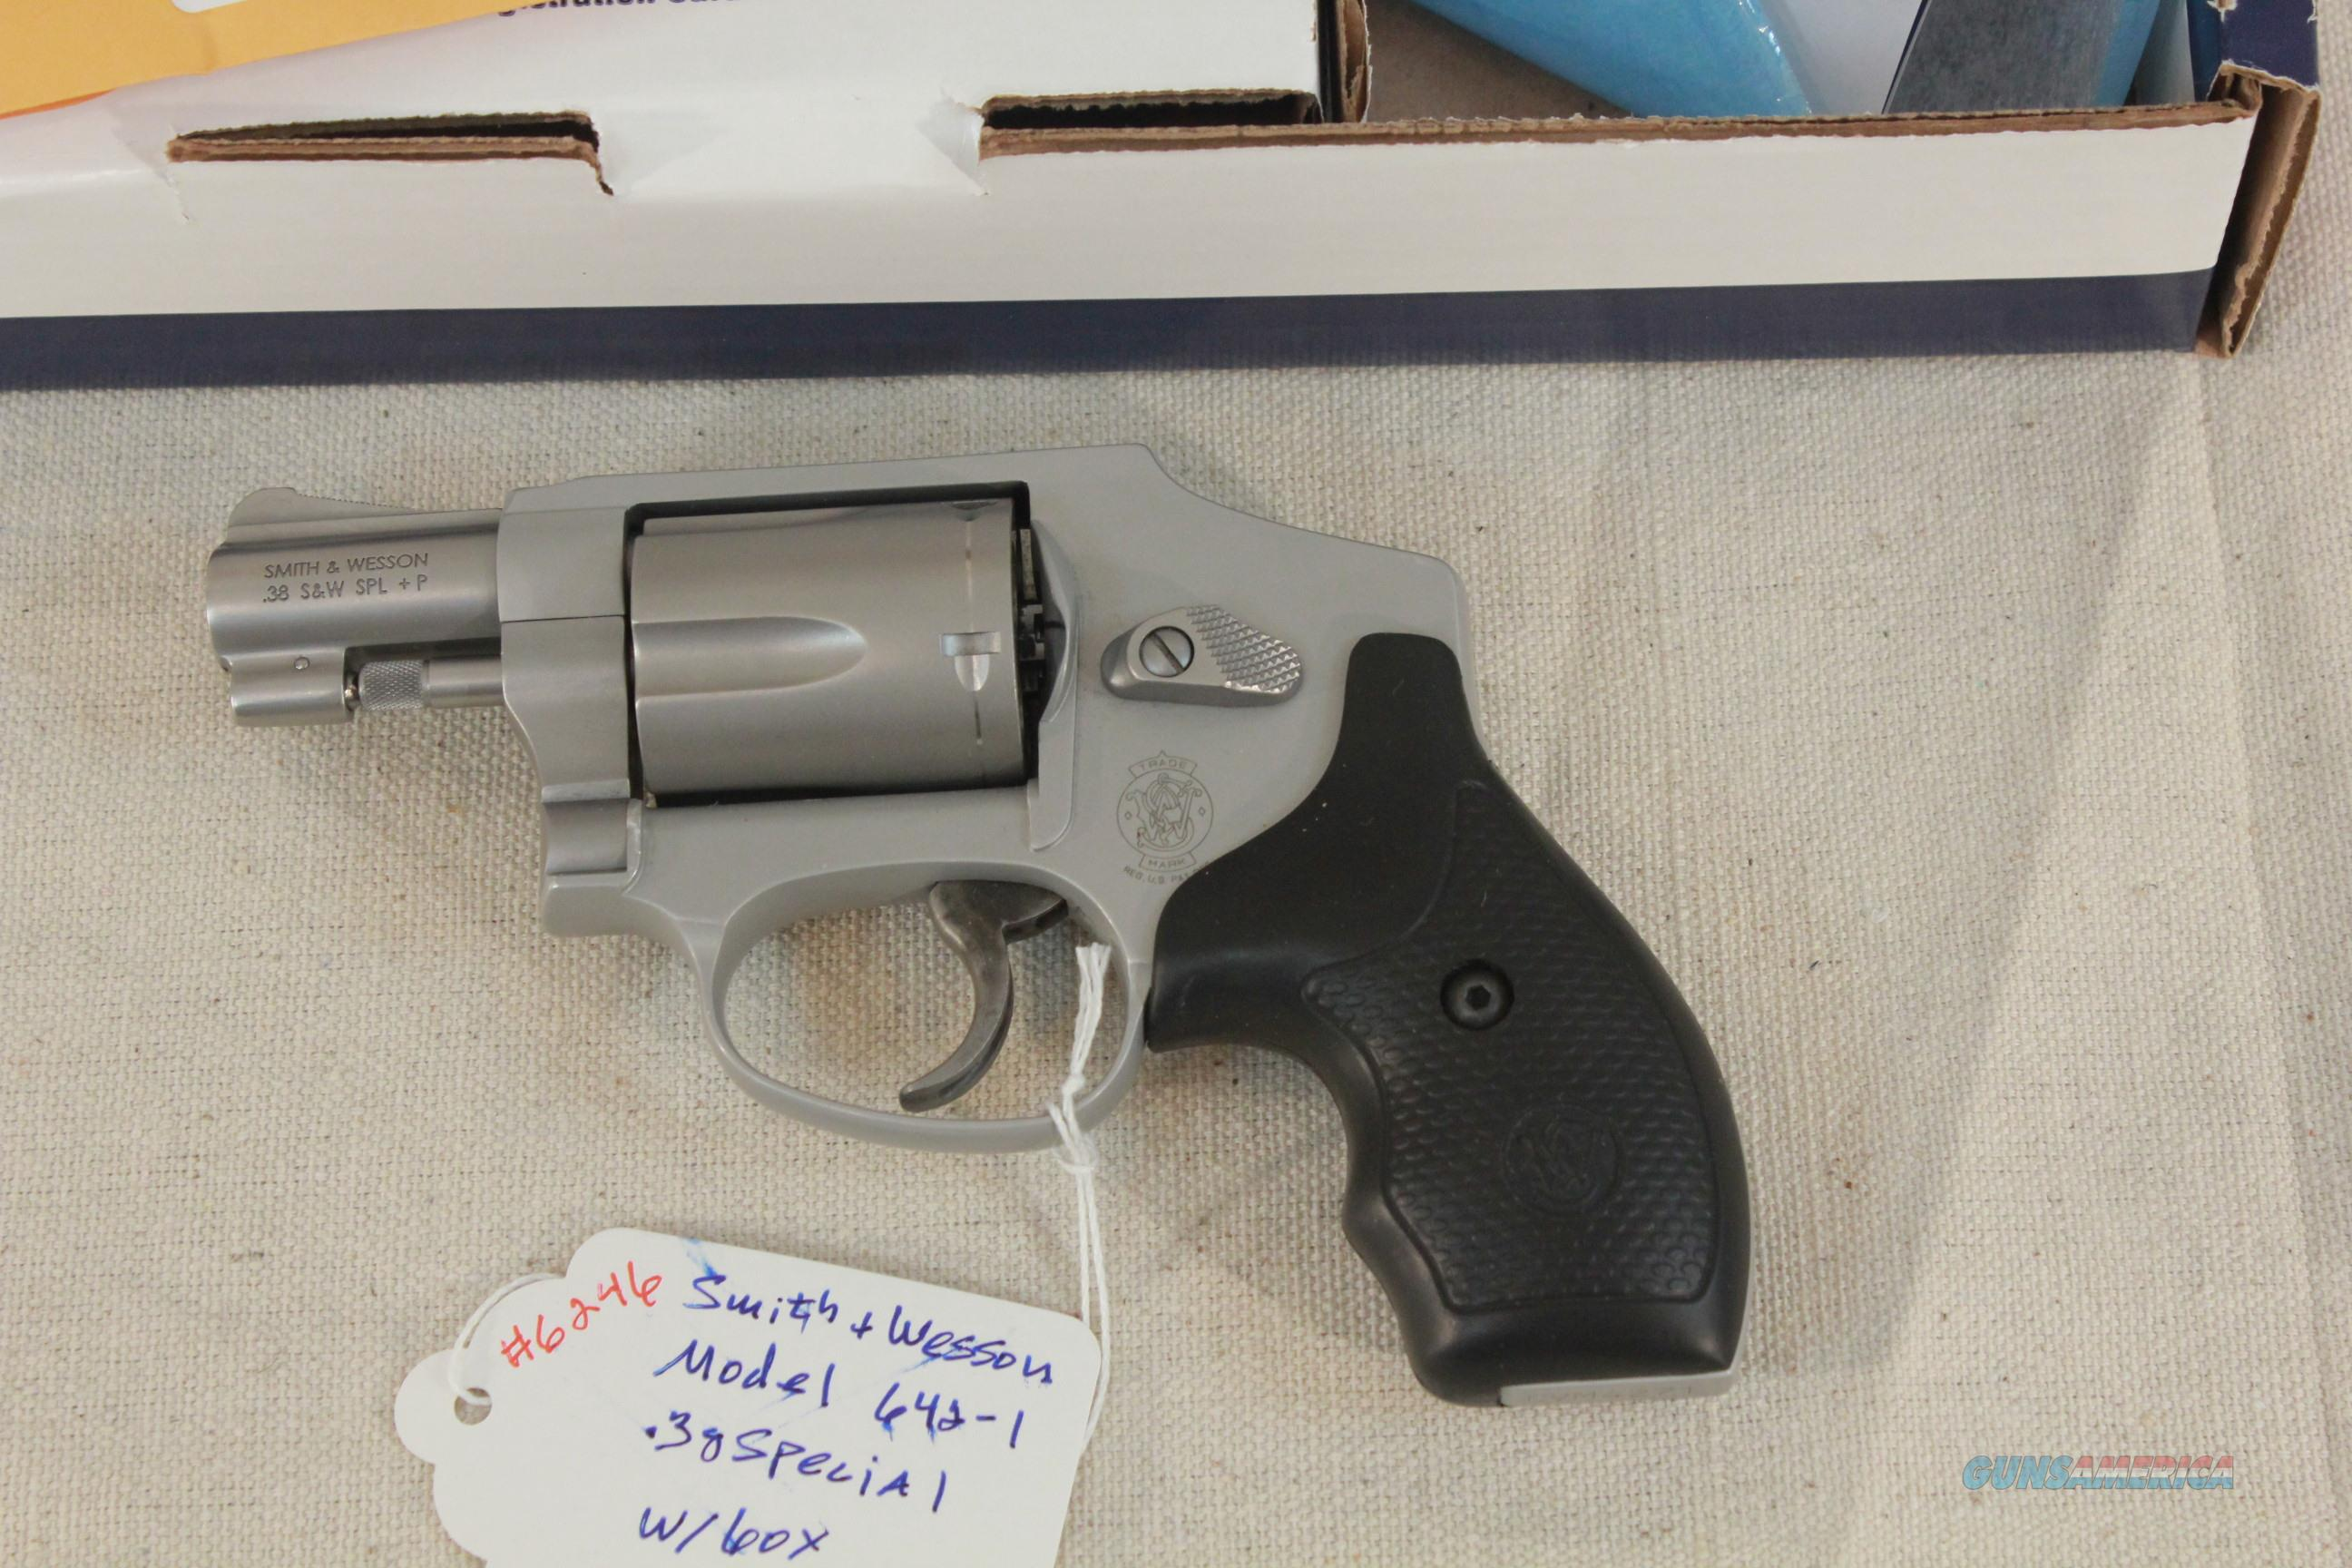 Smith & Wesson Model 642 Airweight .38 Special, Like New  Guns > Pistols > Smith & Wesson Revolvers > Pocket Pistols